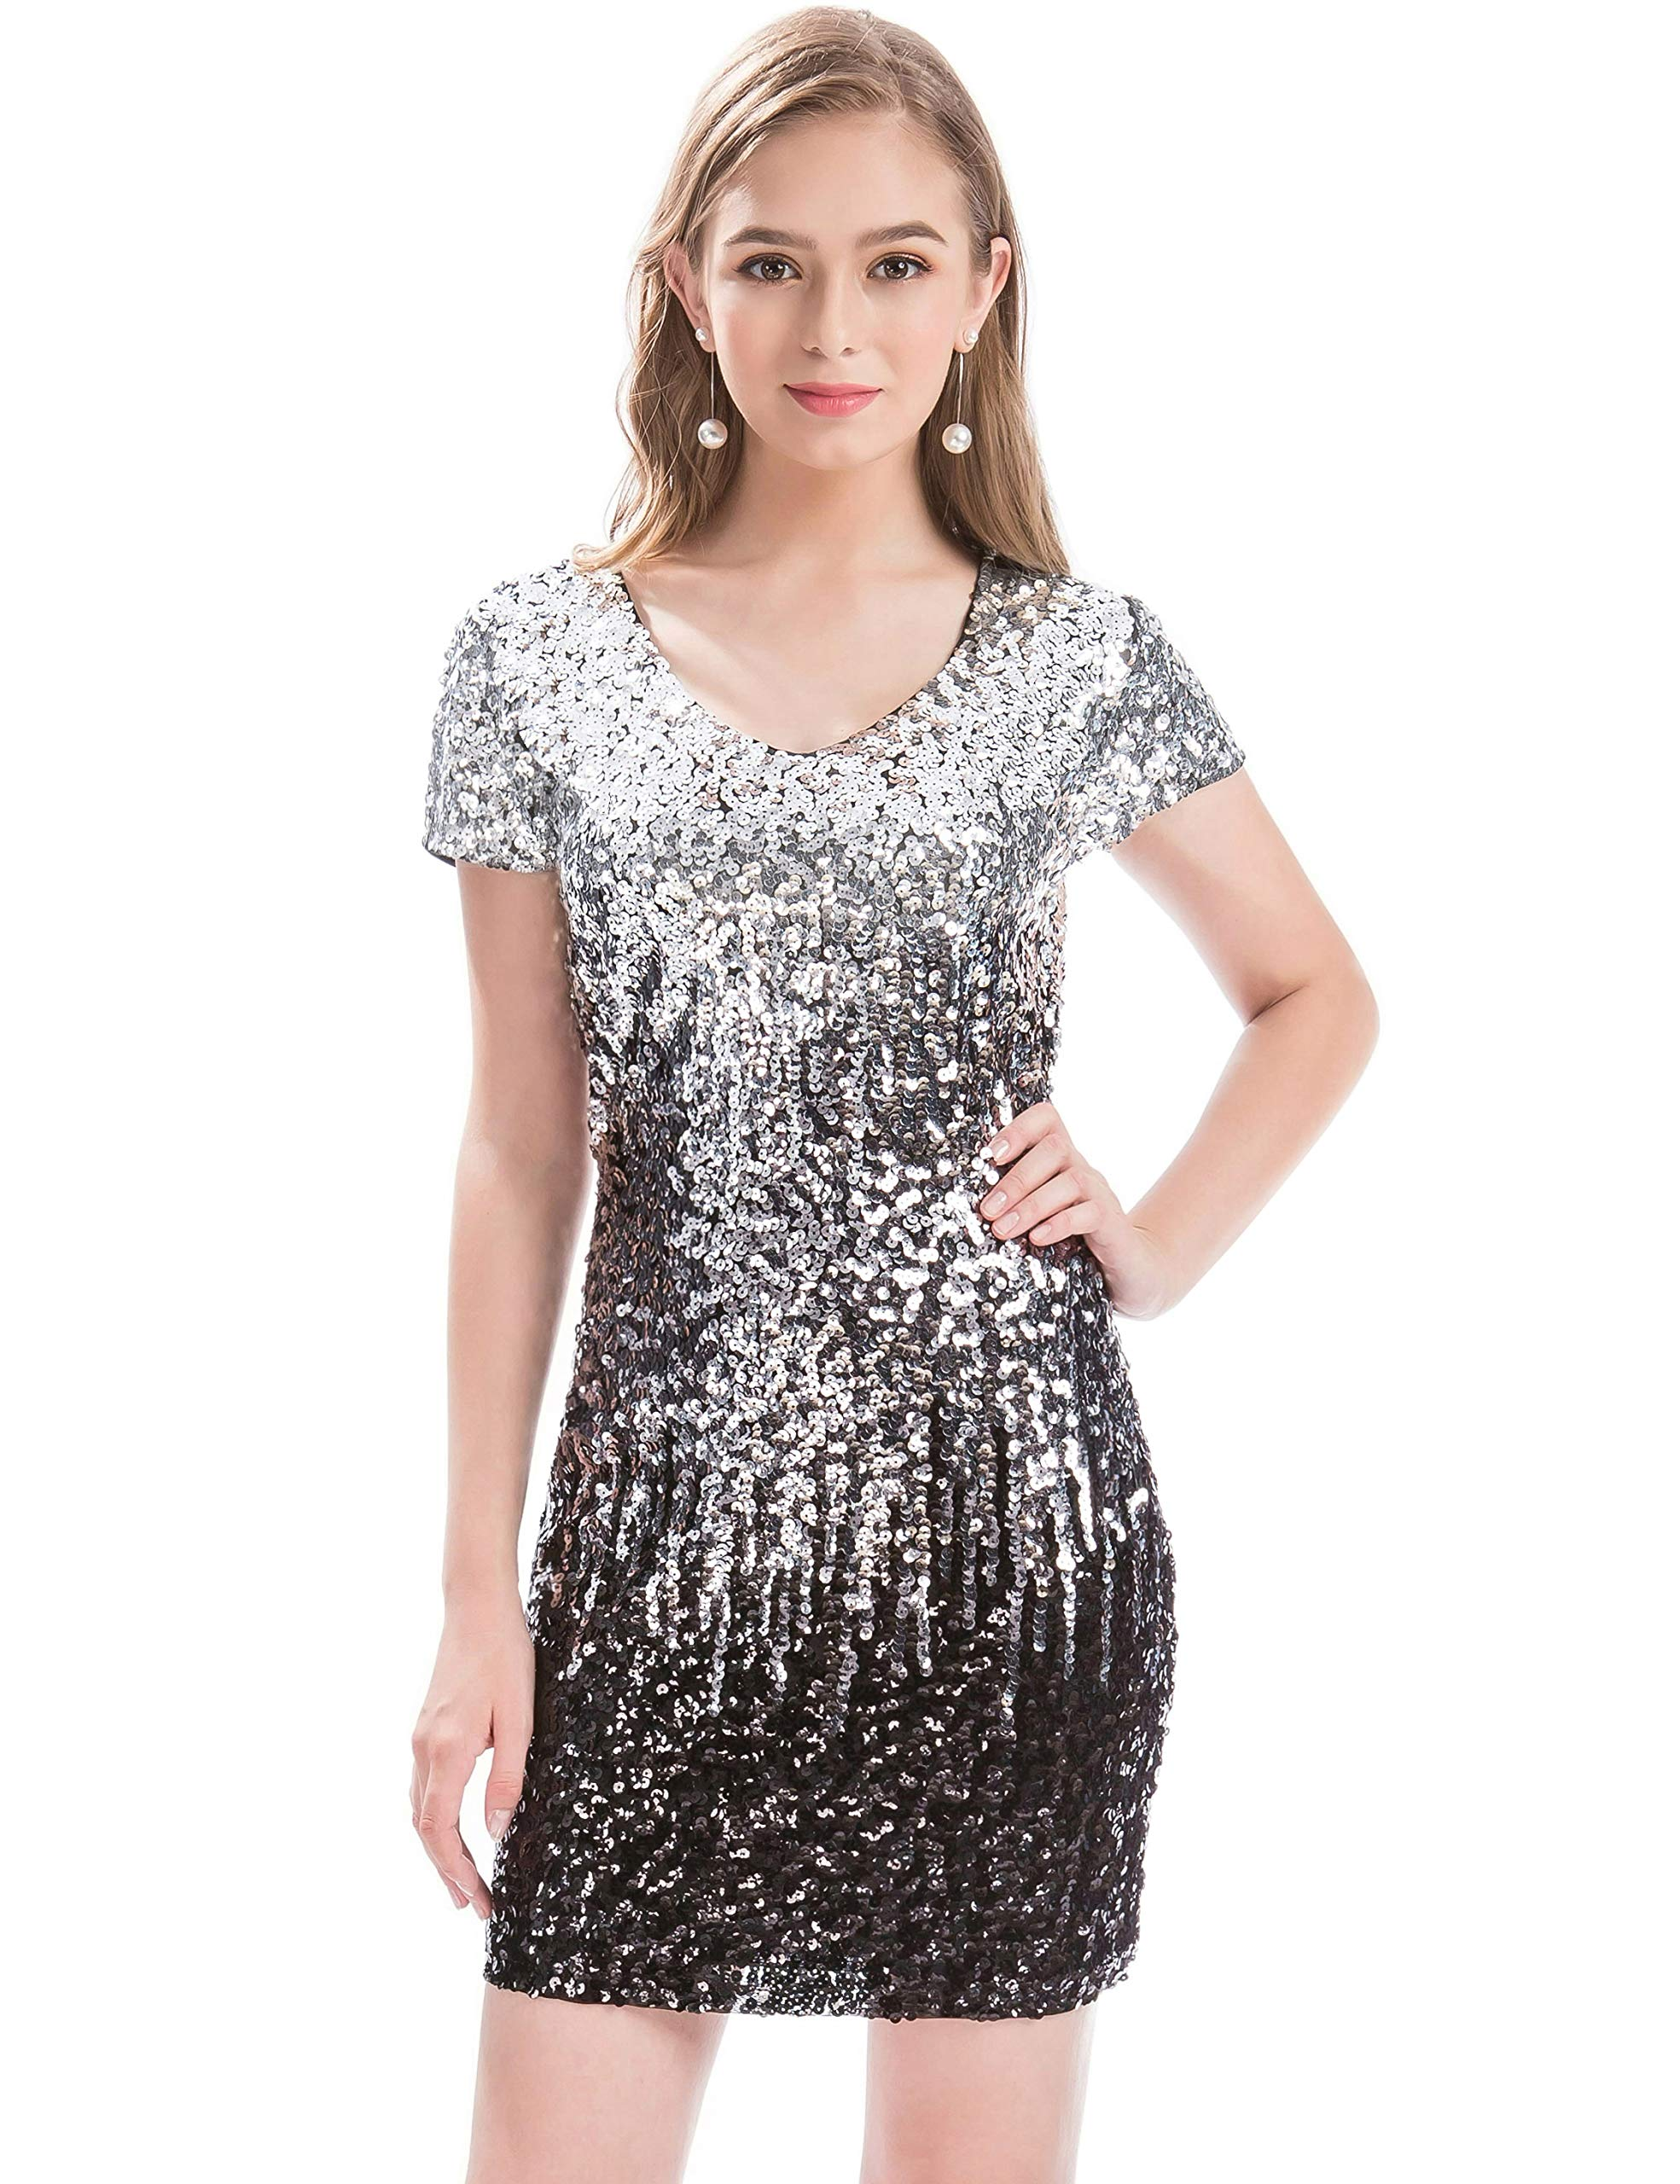 MANER Women's Sequin Glitter Short Sleeve Dress Sexy V Neck Mini Party Club Bodycon Gowns(XL, Silver/Gray/Black)